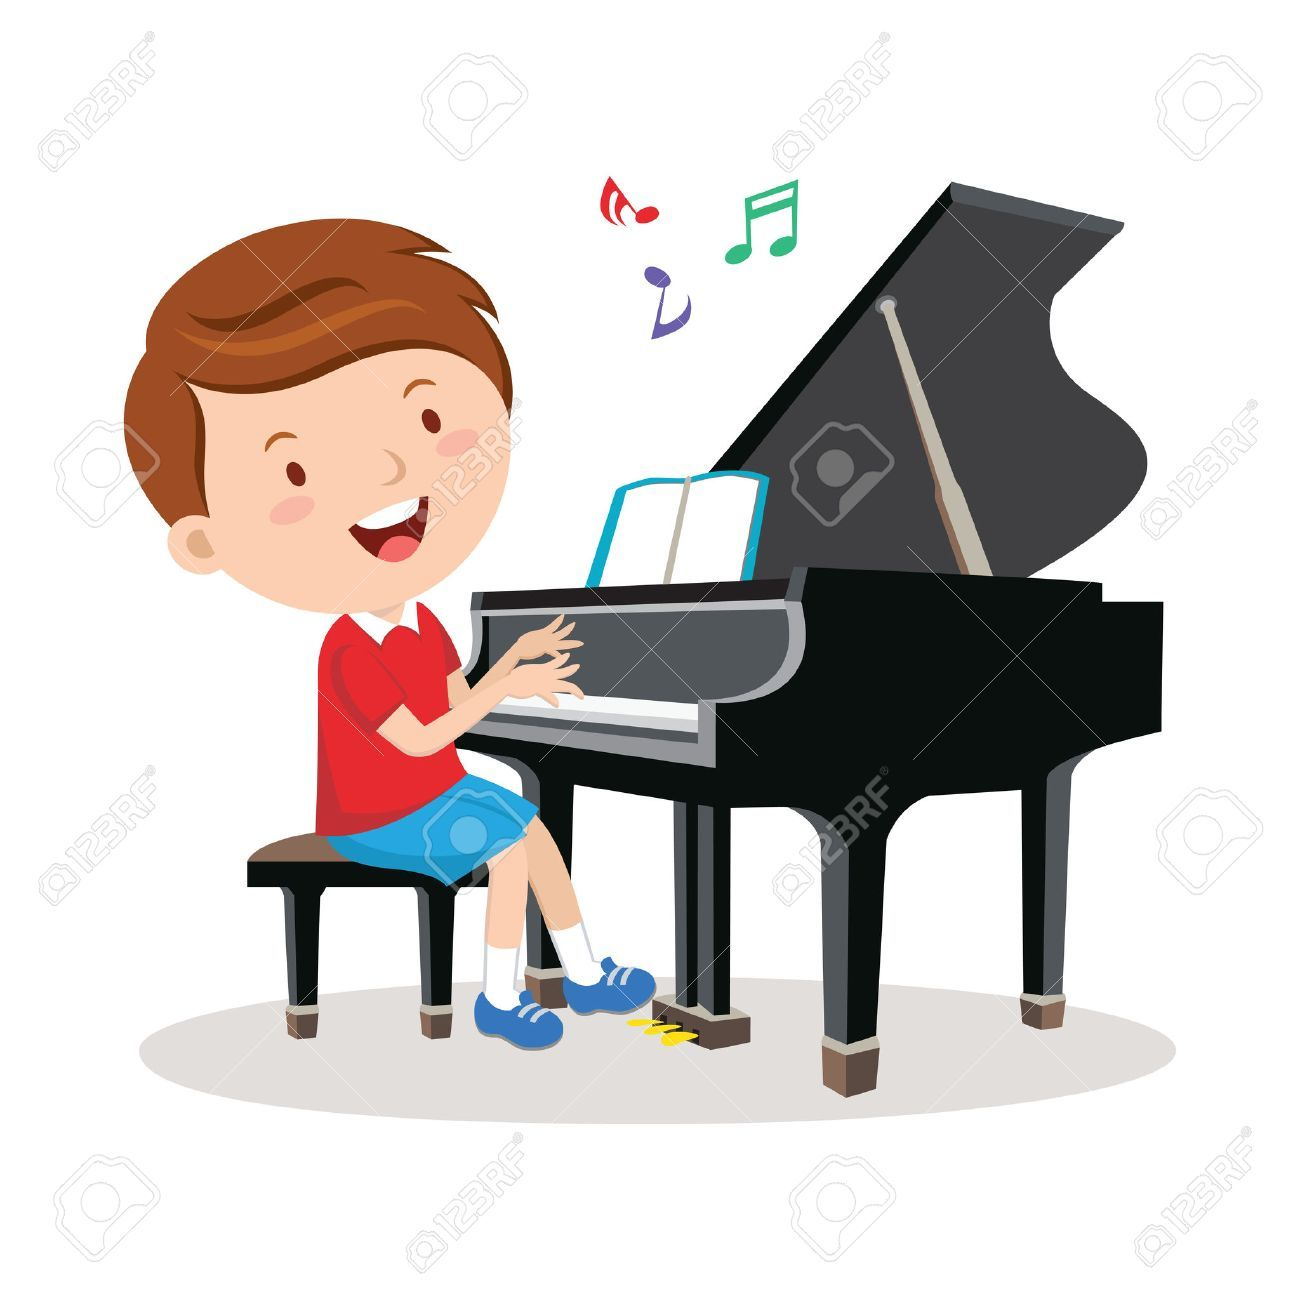 Kids playing piano clipart clip art black and white stock Child playing piano clipart 3 » Clipart Portal clip art black and white stock